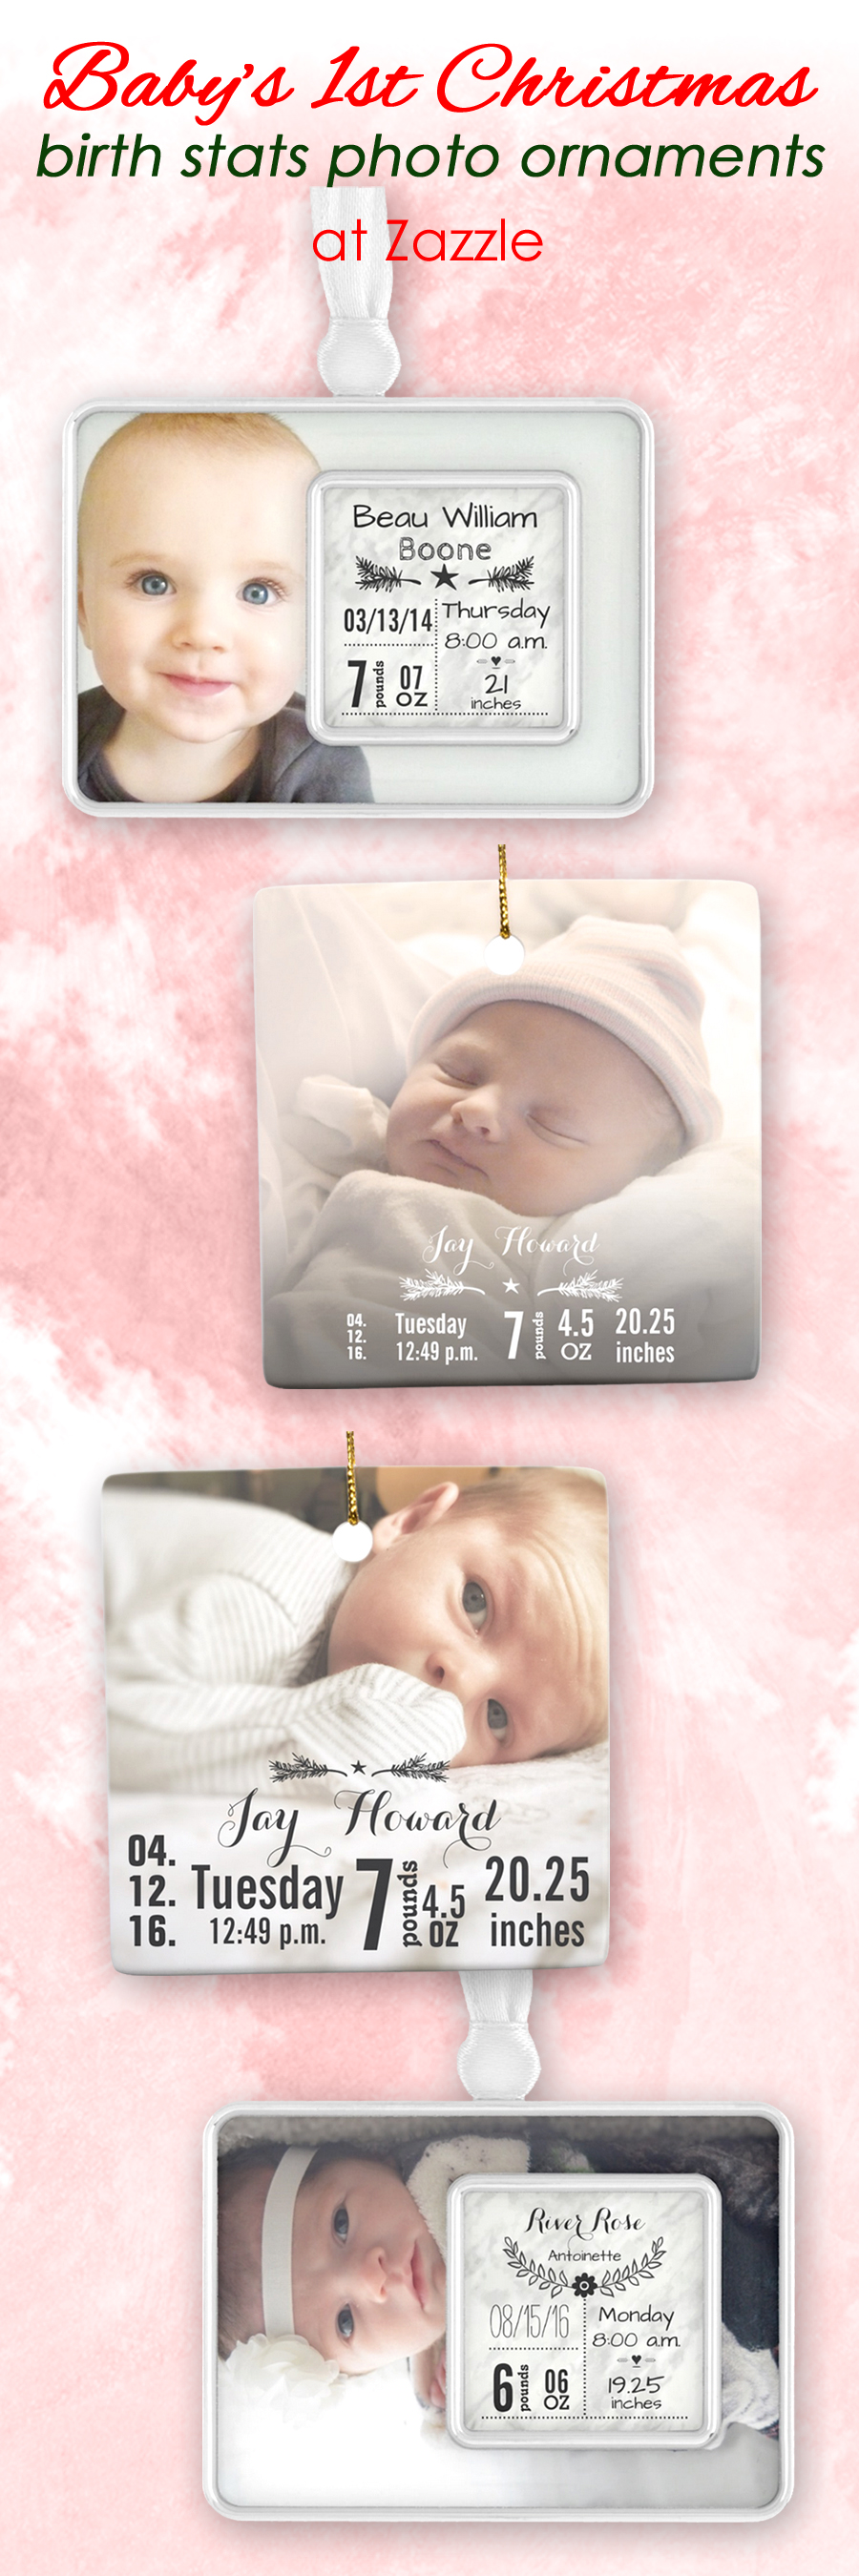 New baby ornaments - Baby S 1st Christmas Tree Ornament New Baby Photo Ornaments With Customizable Newborn Birth Stats Info Choose From Silver Plated Framed Ornament